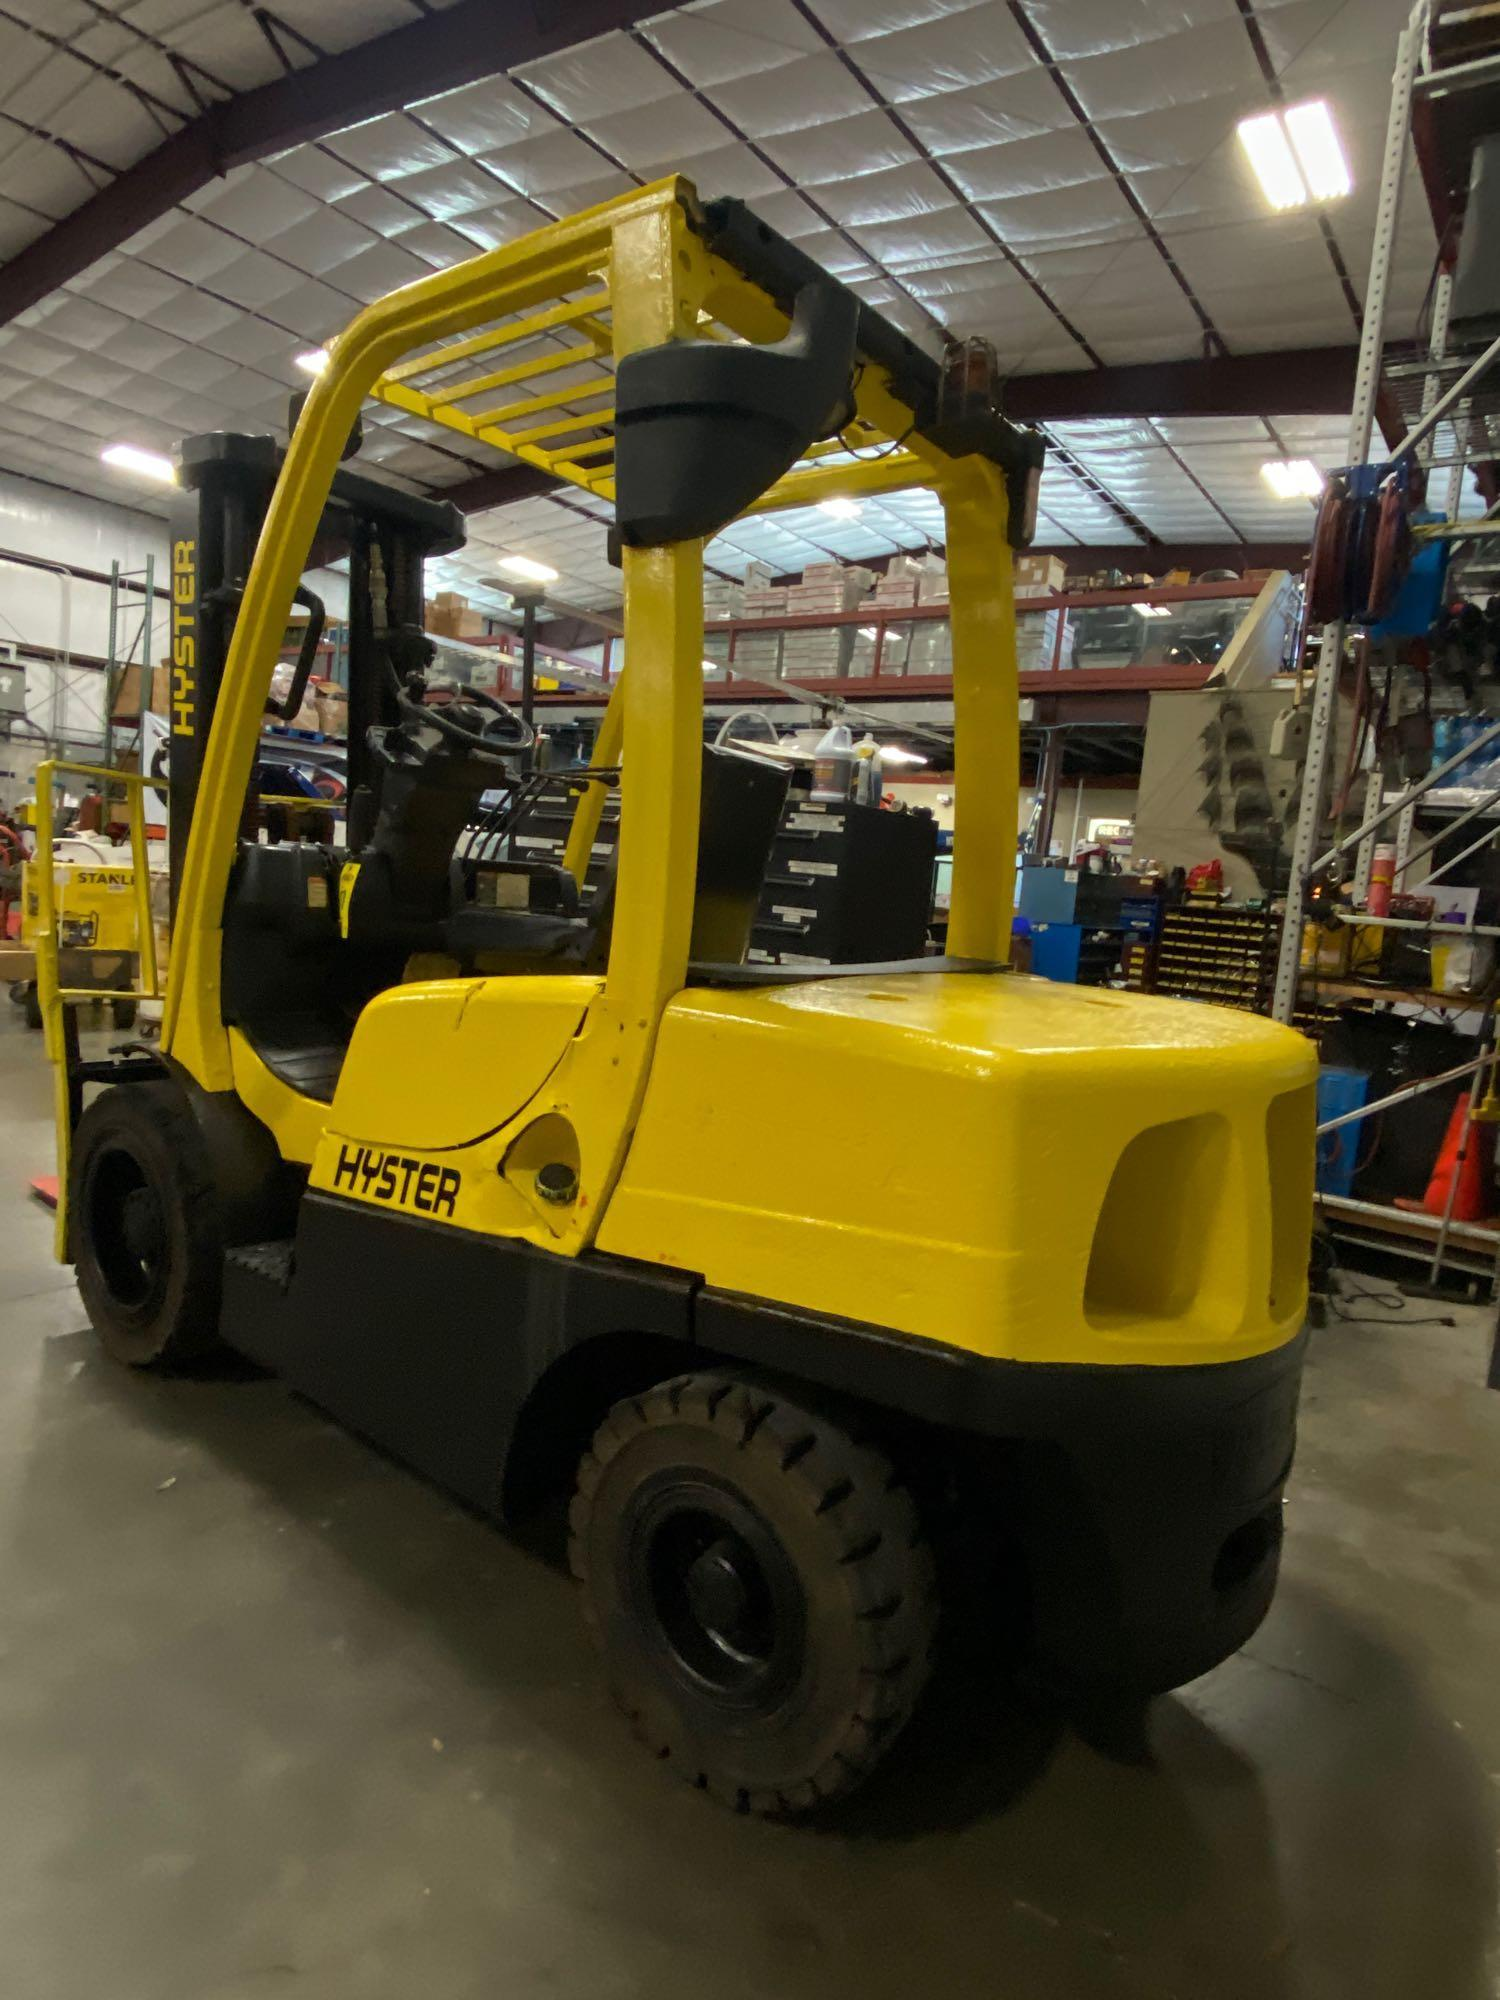 """HYSTER H70FT FORKLIFT, APPROX. 7,000 LB CAPACITY, 181.9"""" HEIGHT CAP, TILT, RUNS AND OPERATES - Image 2 of 10"""